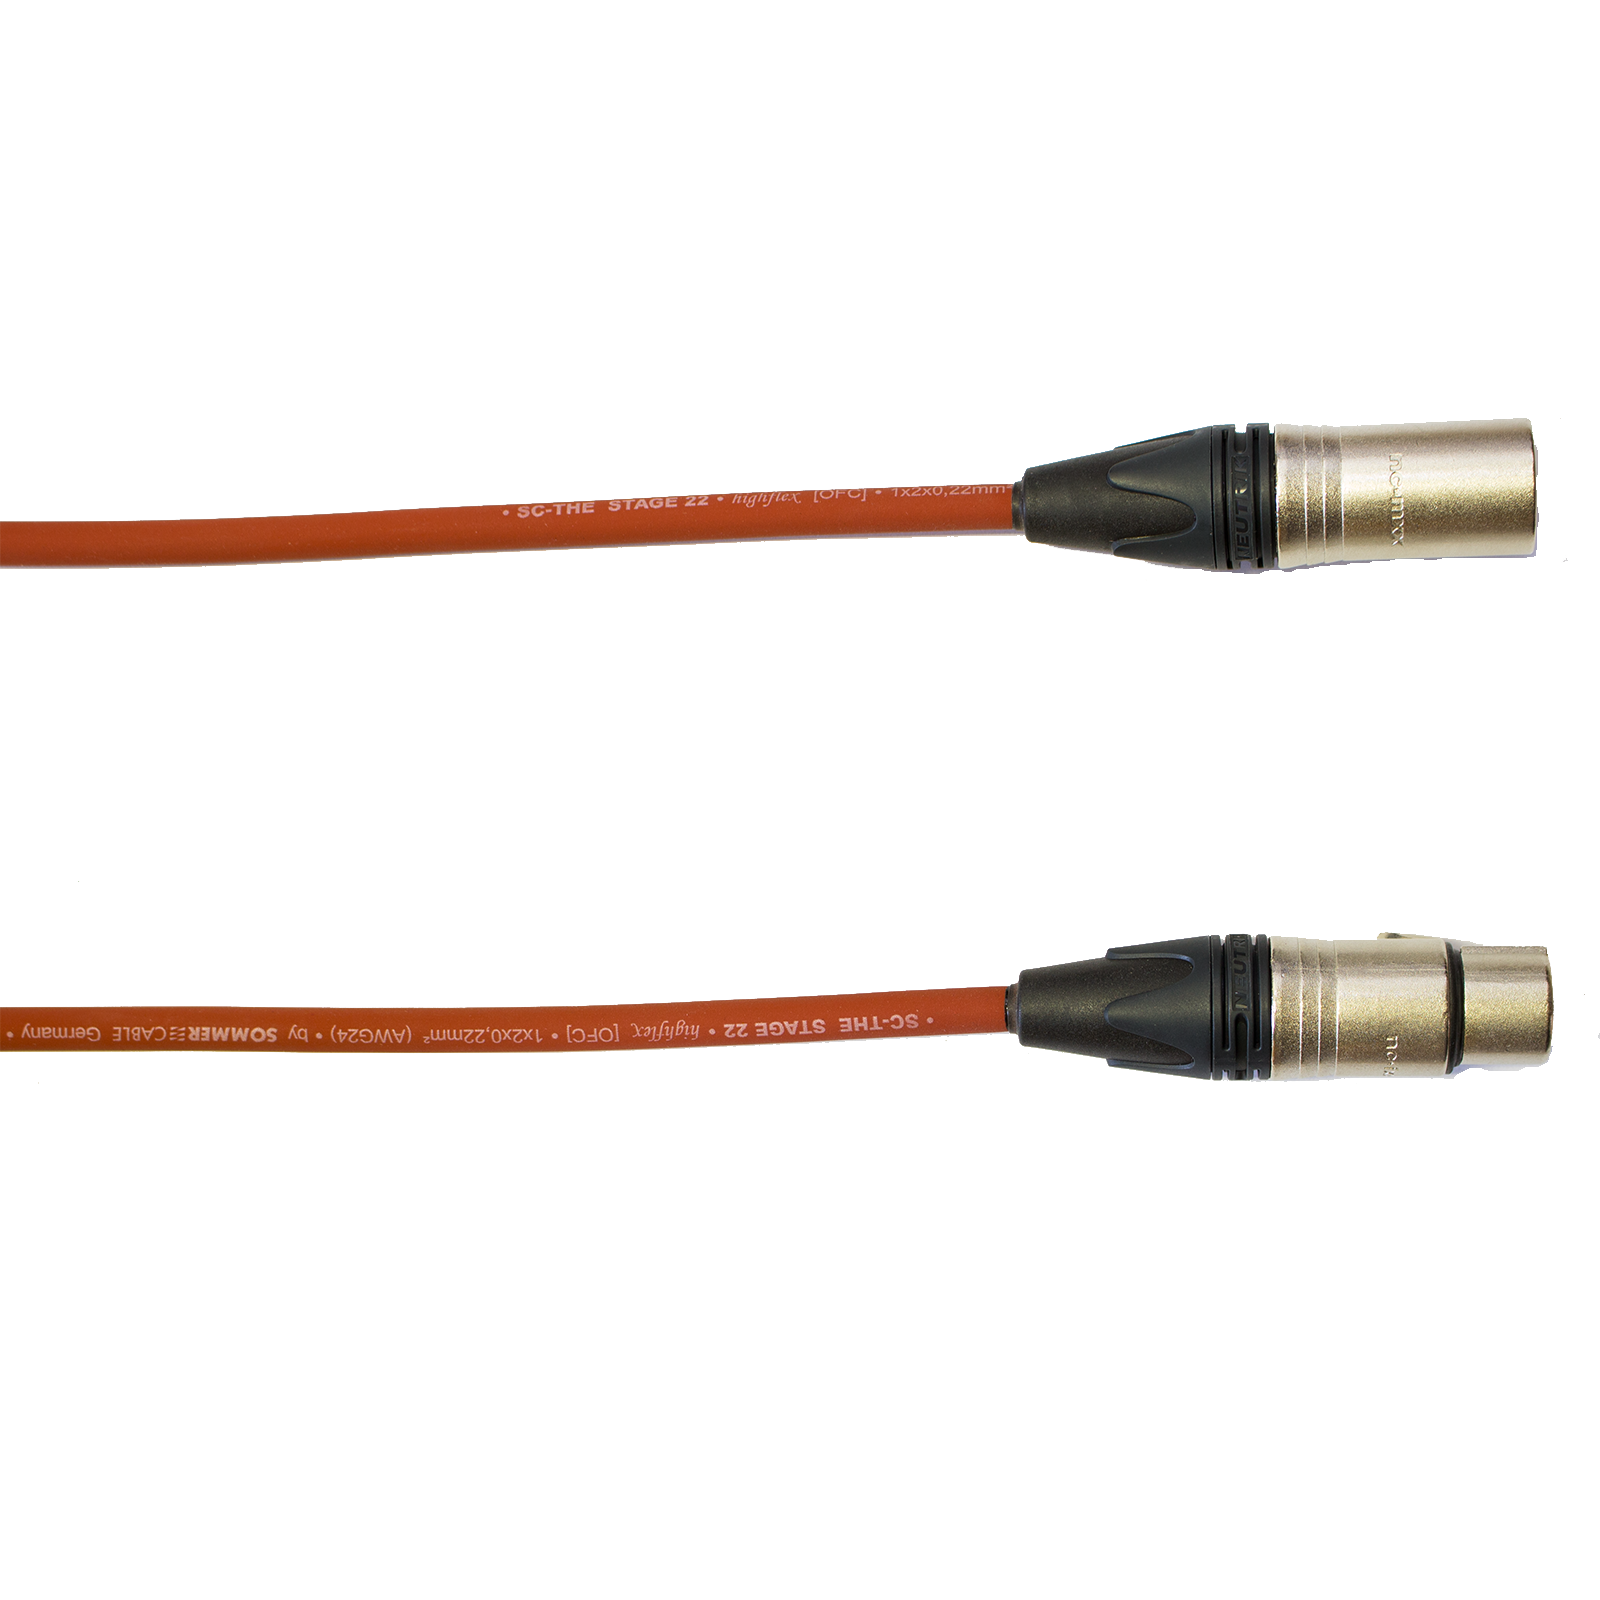 Audiokabel XLR konektor Neutrik male/female  1,5 m, Sommer, červený